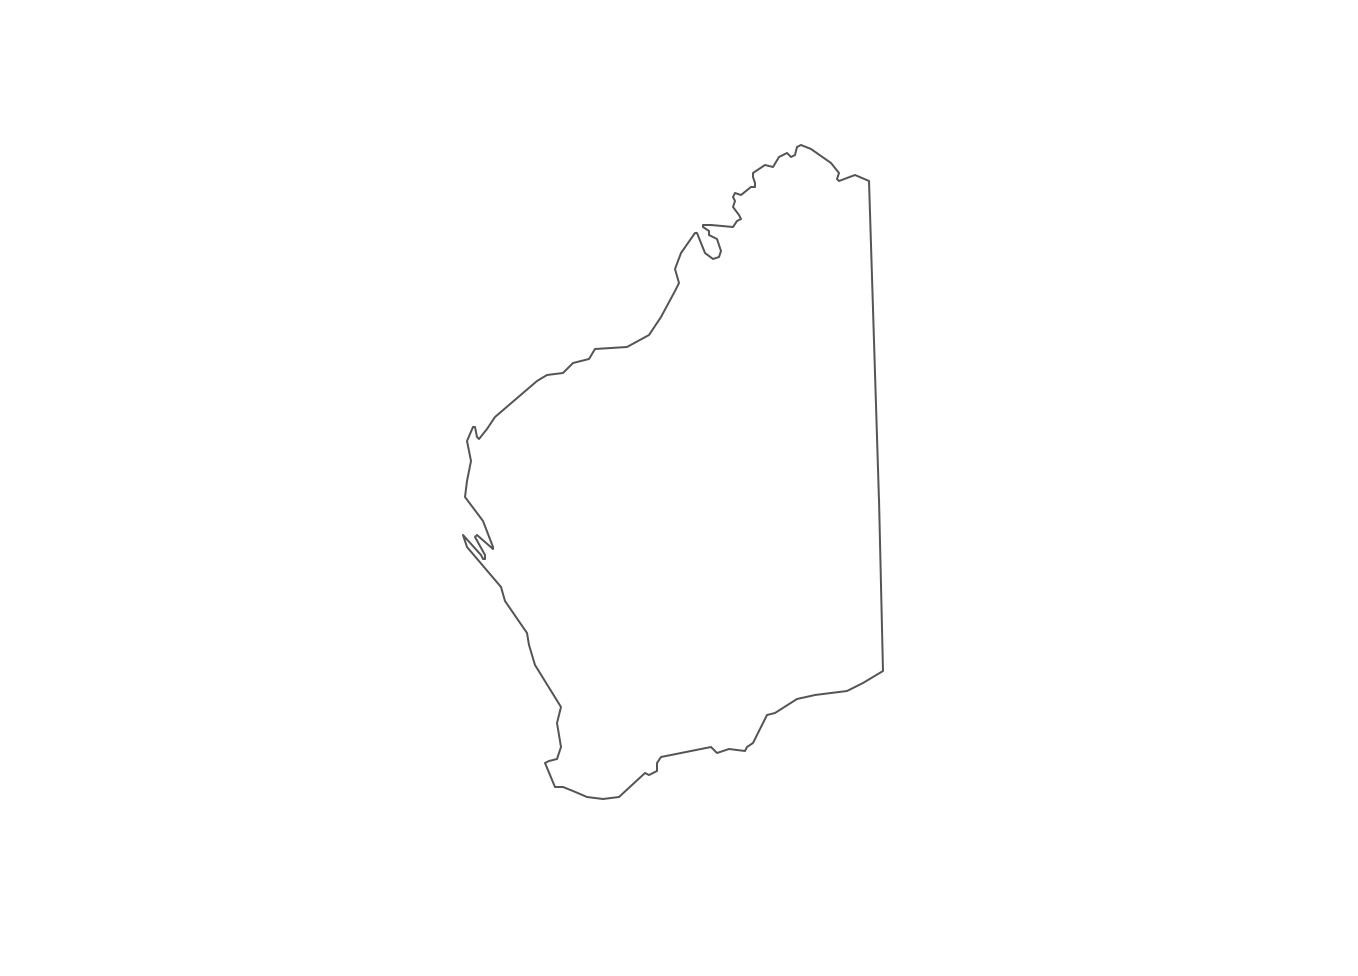 how to draw a simple map of australia